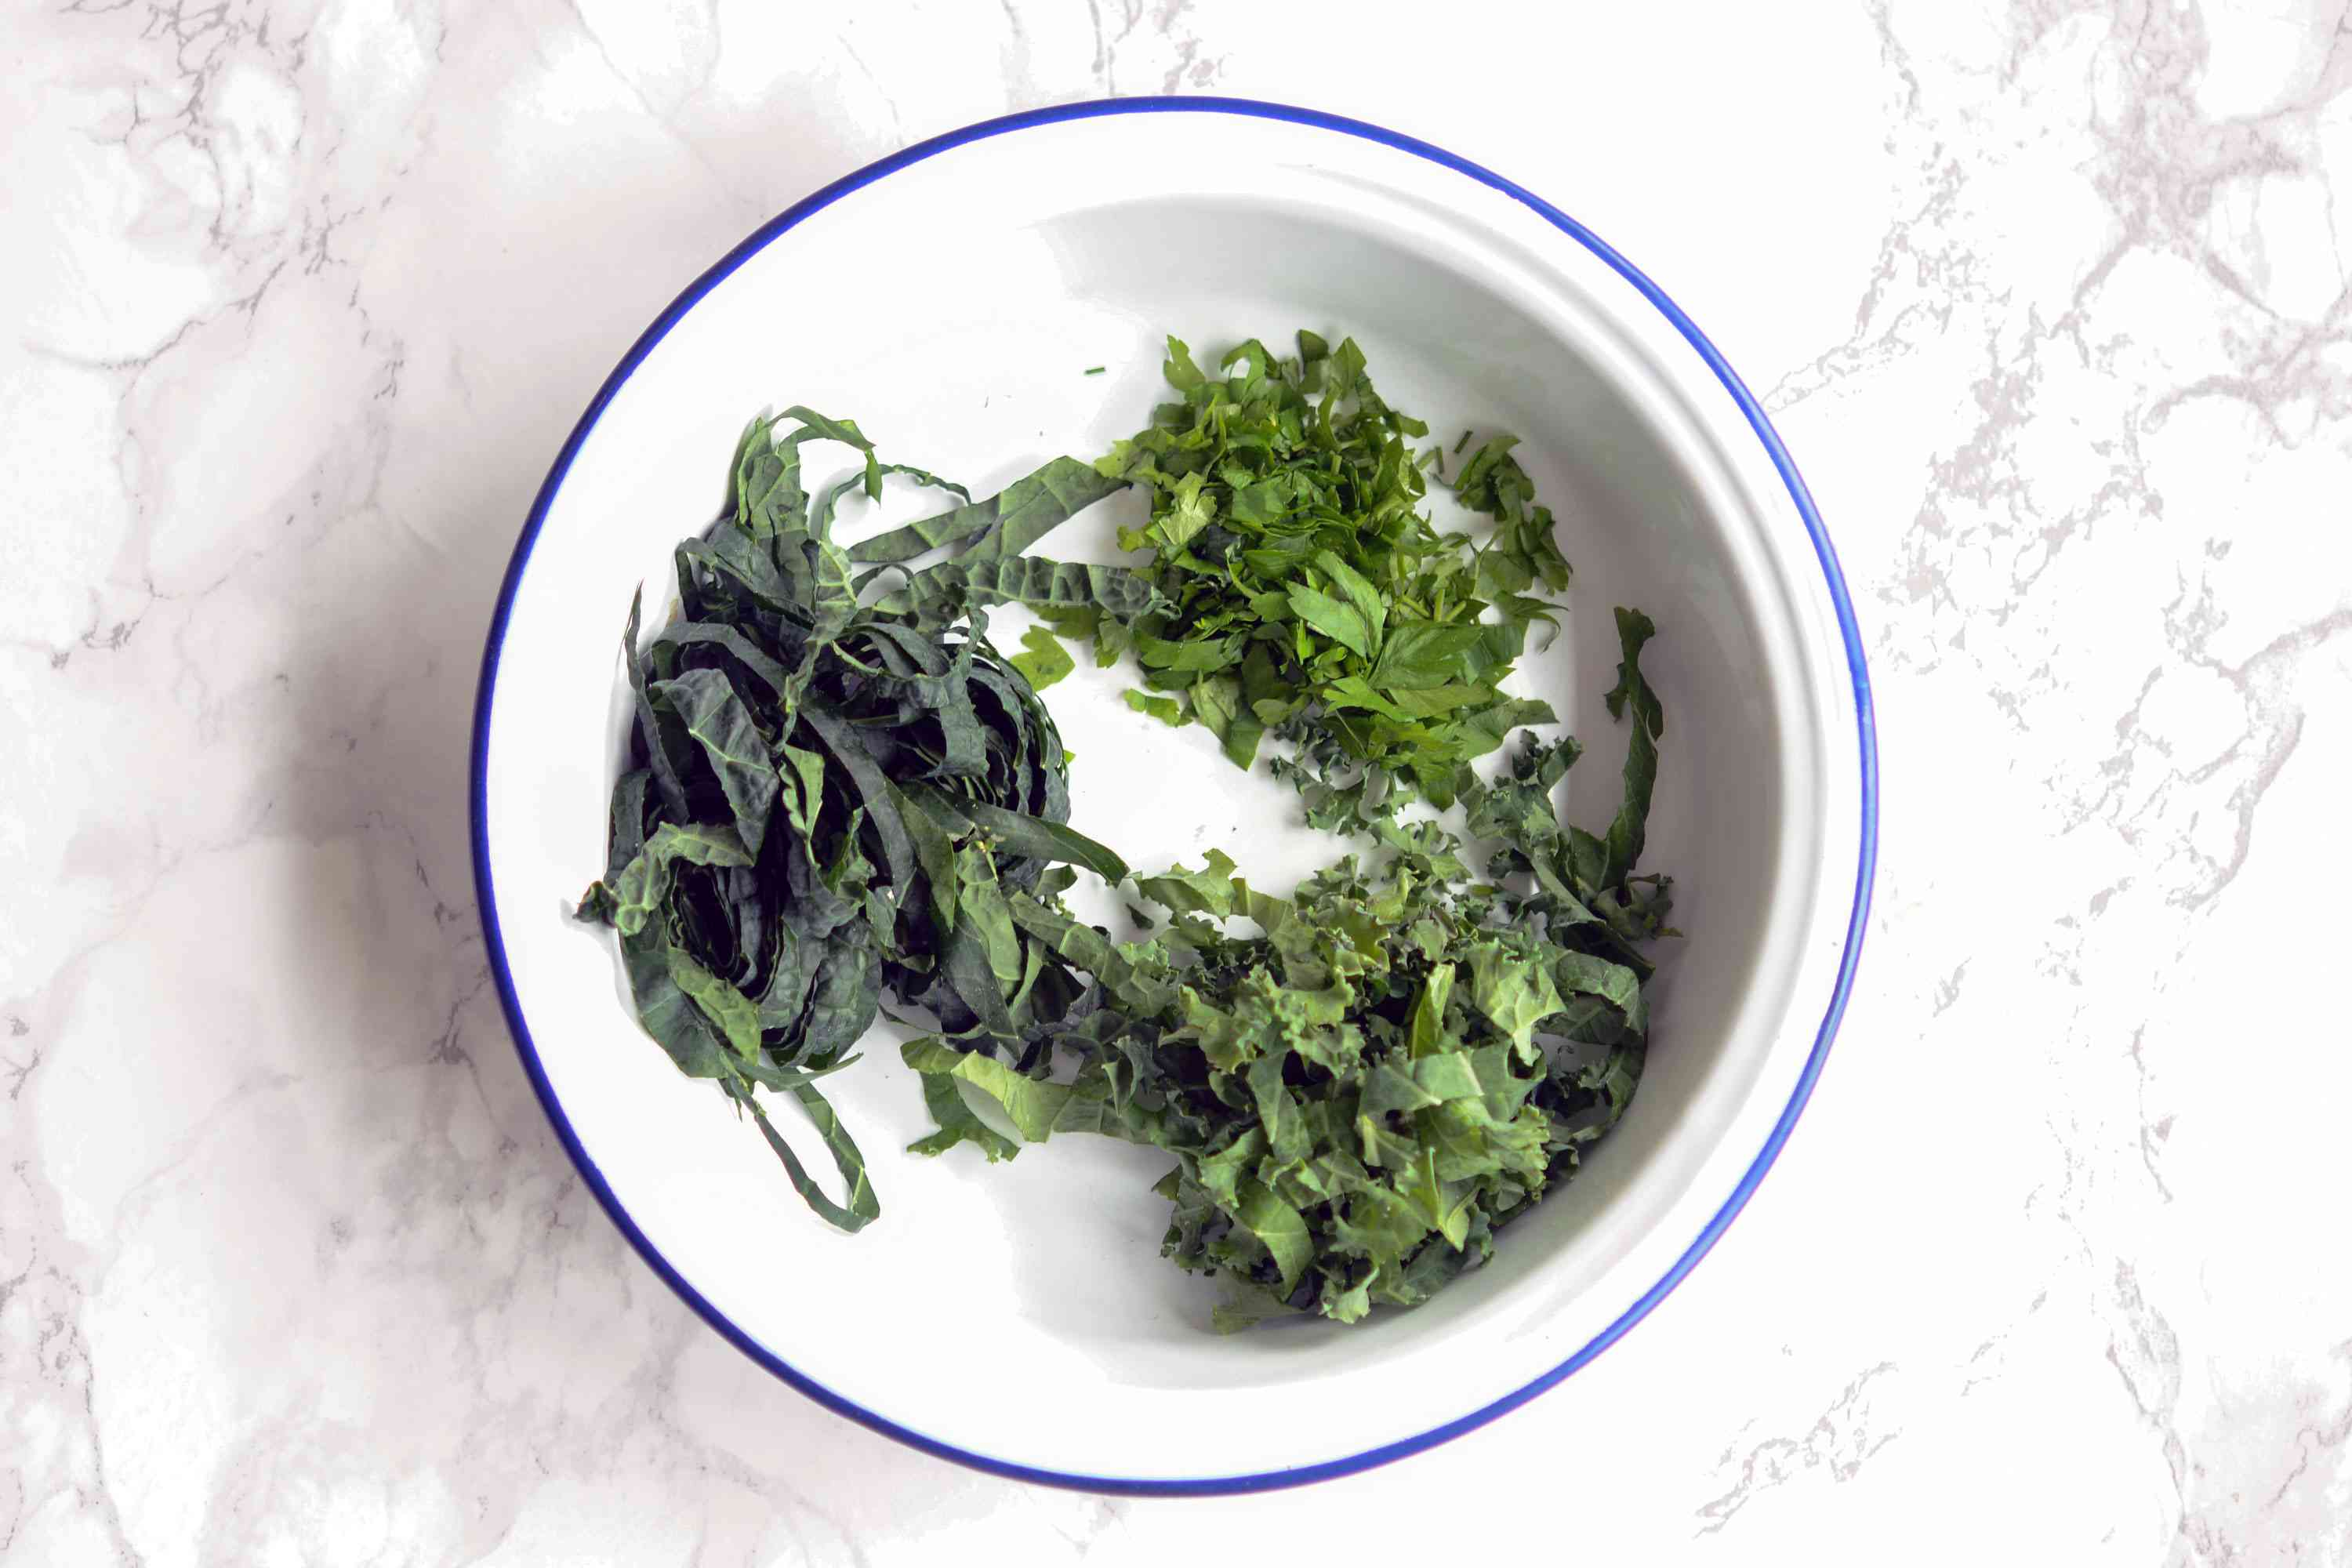 Shredded kale, spring greens, and parsely